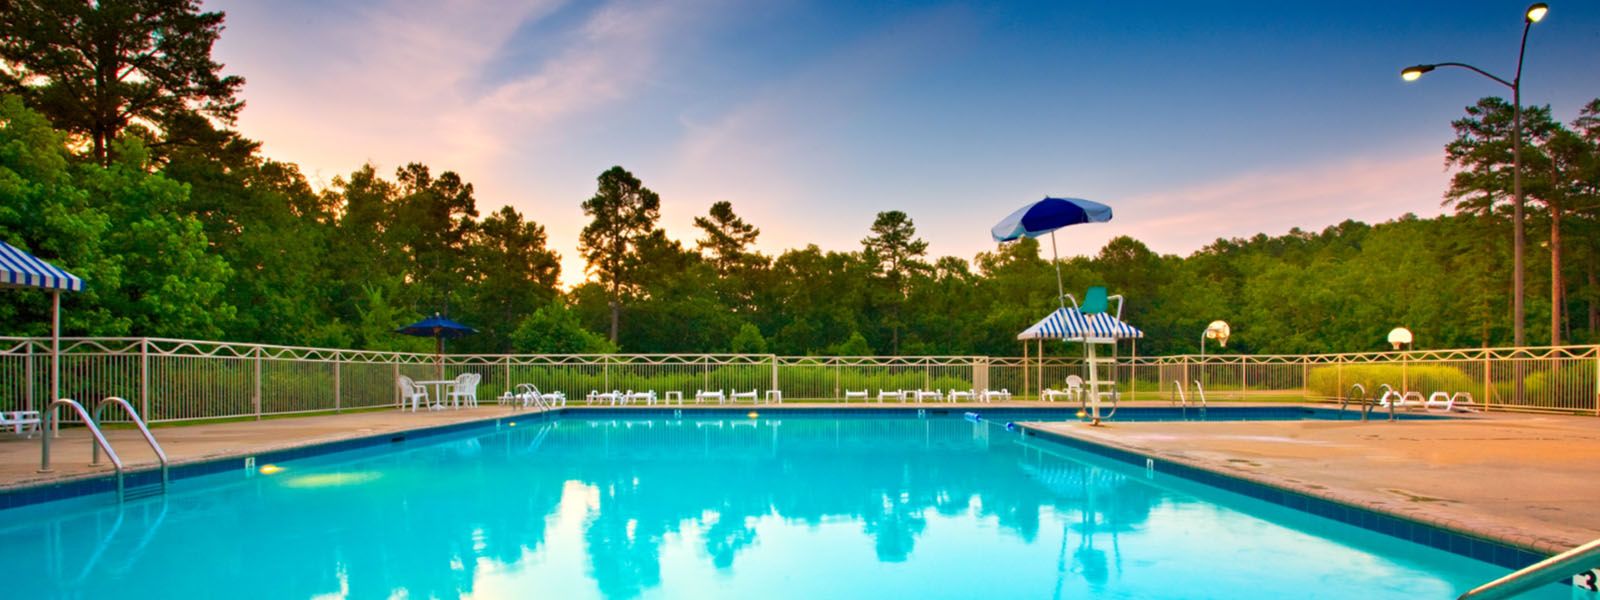 Chenal Properties   Planned Mountain Community in Hot Springs Arkansas